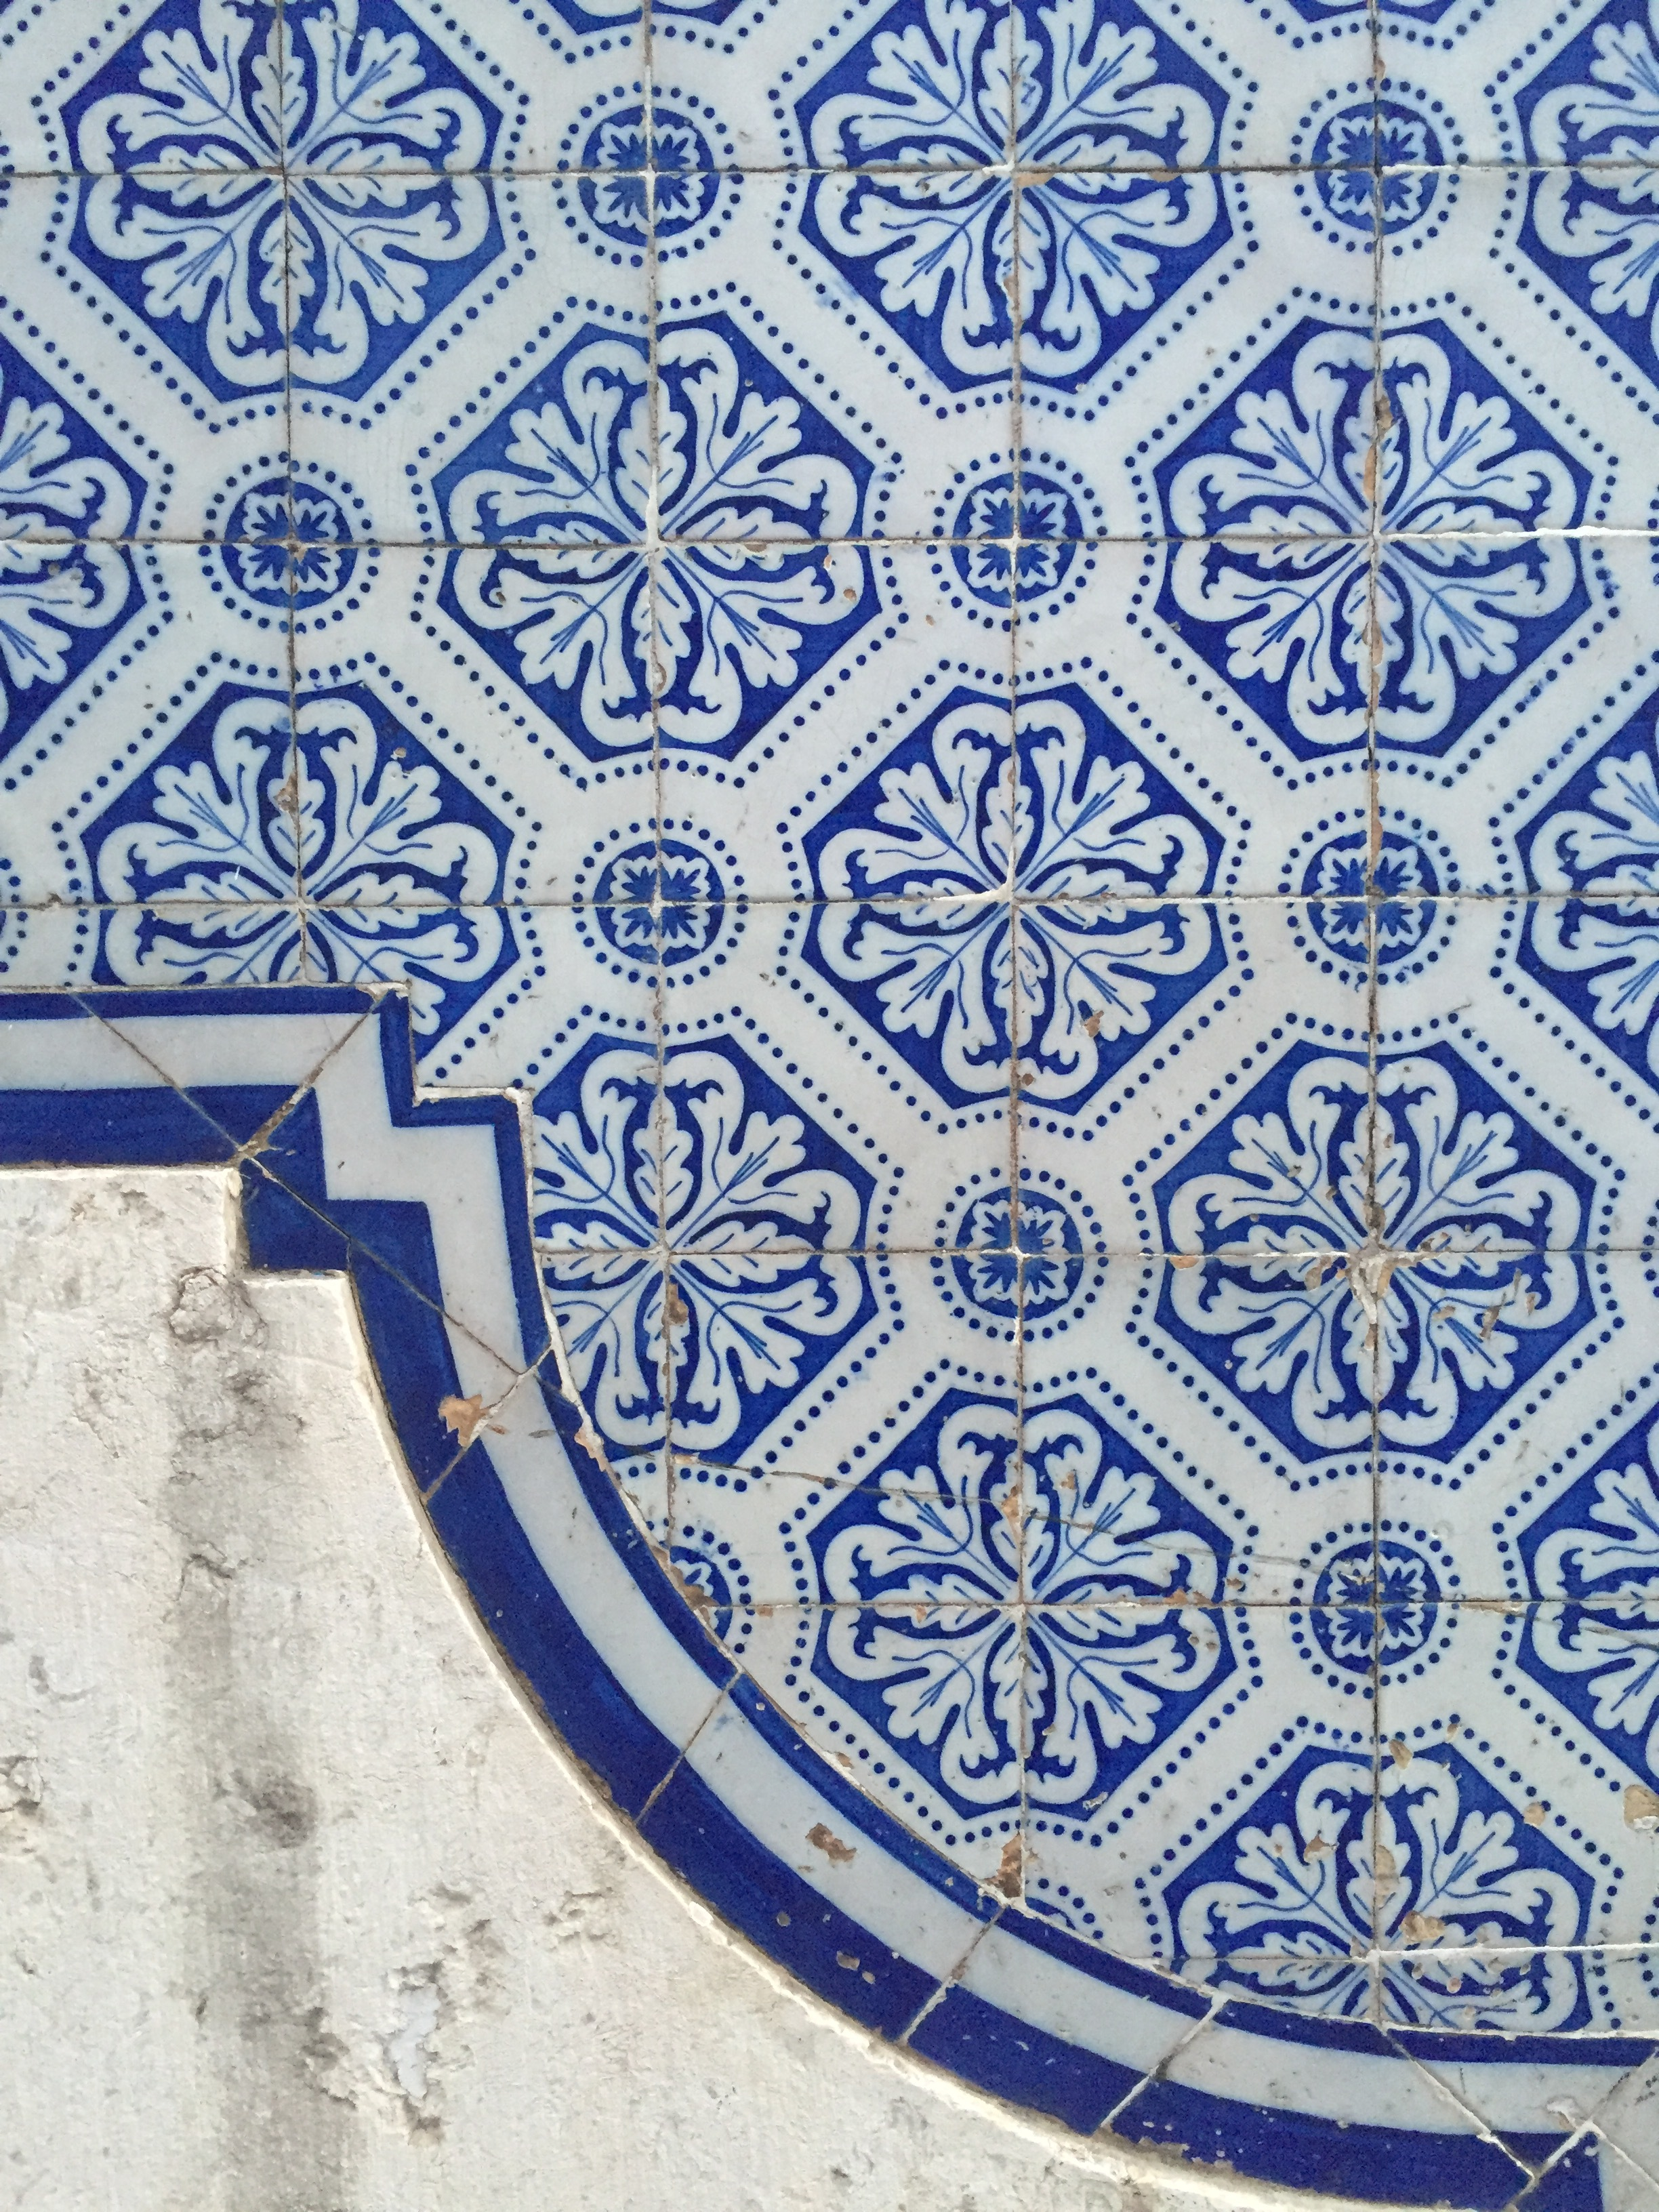 azulejos at their finest: fitting the tile to the curve